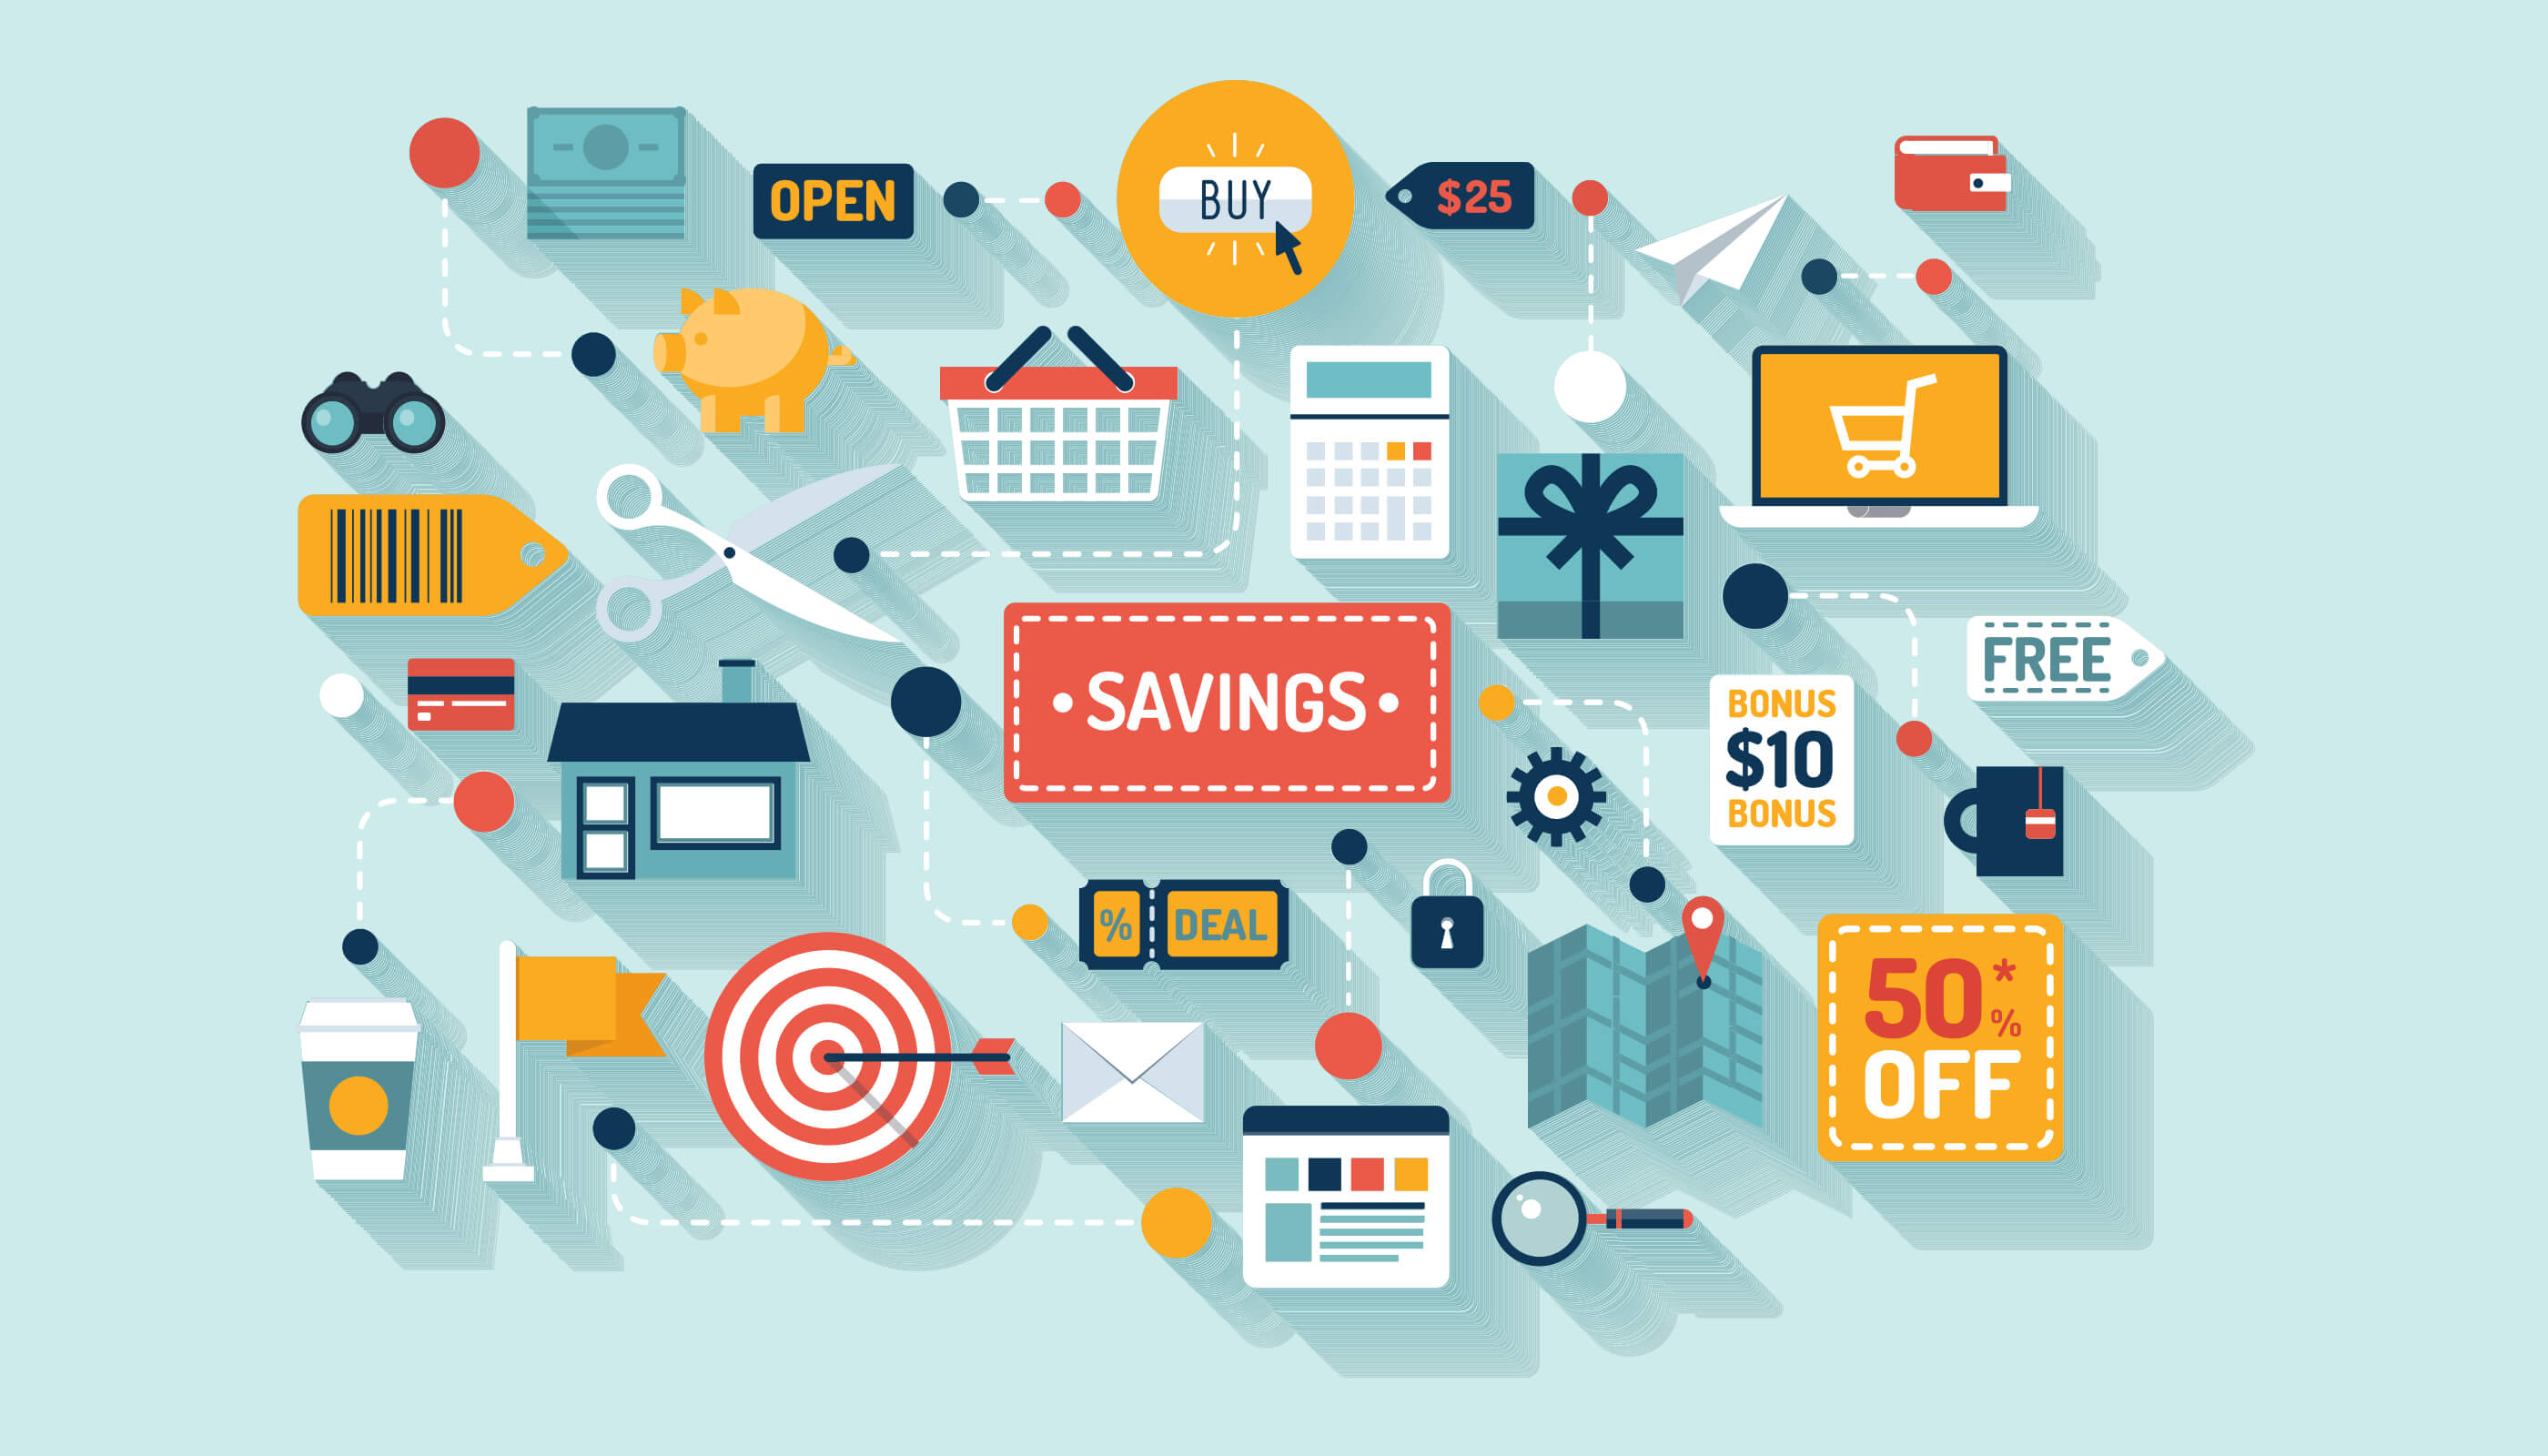 vector image of ecommerce elements including savings, trolleys, discounts, websites, calculators